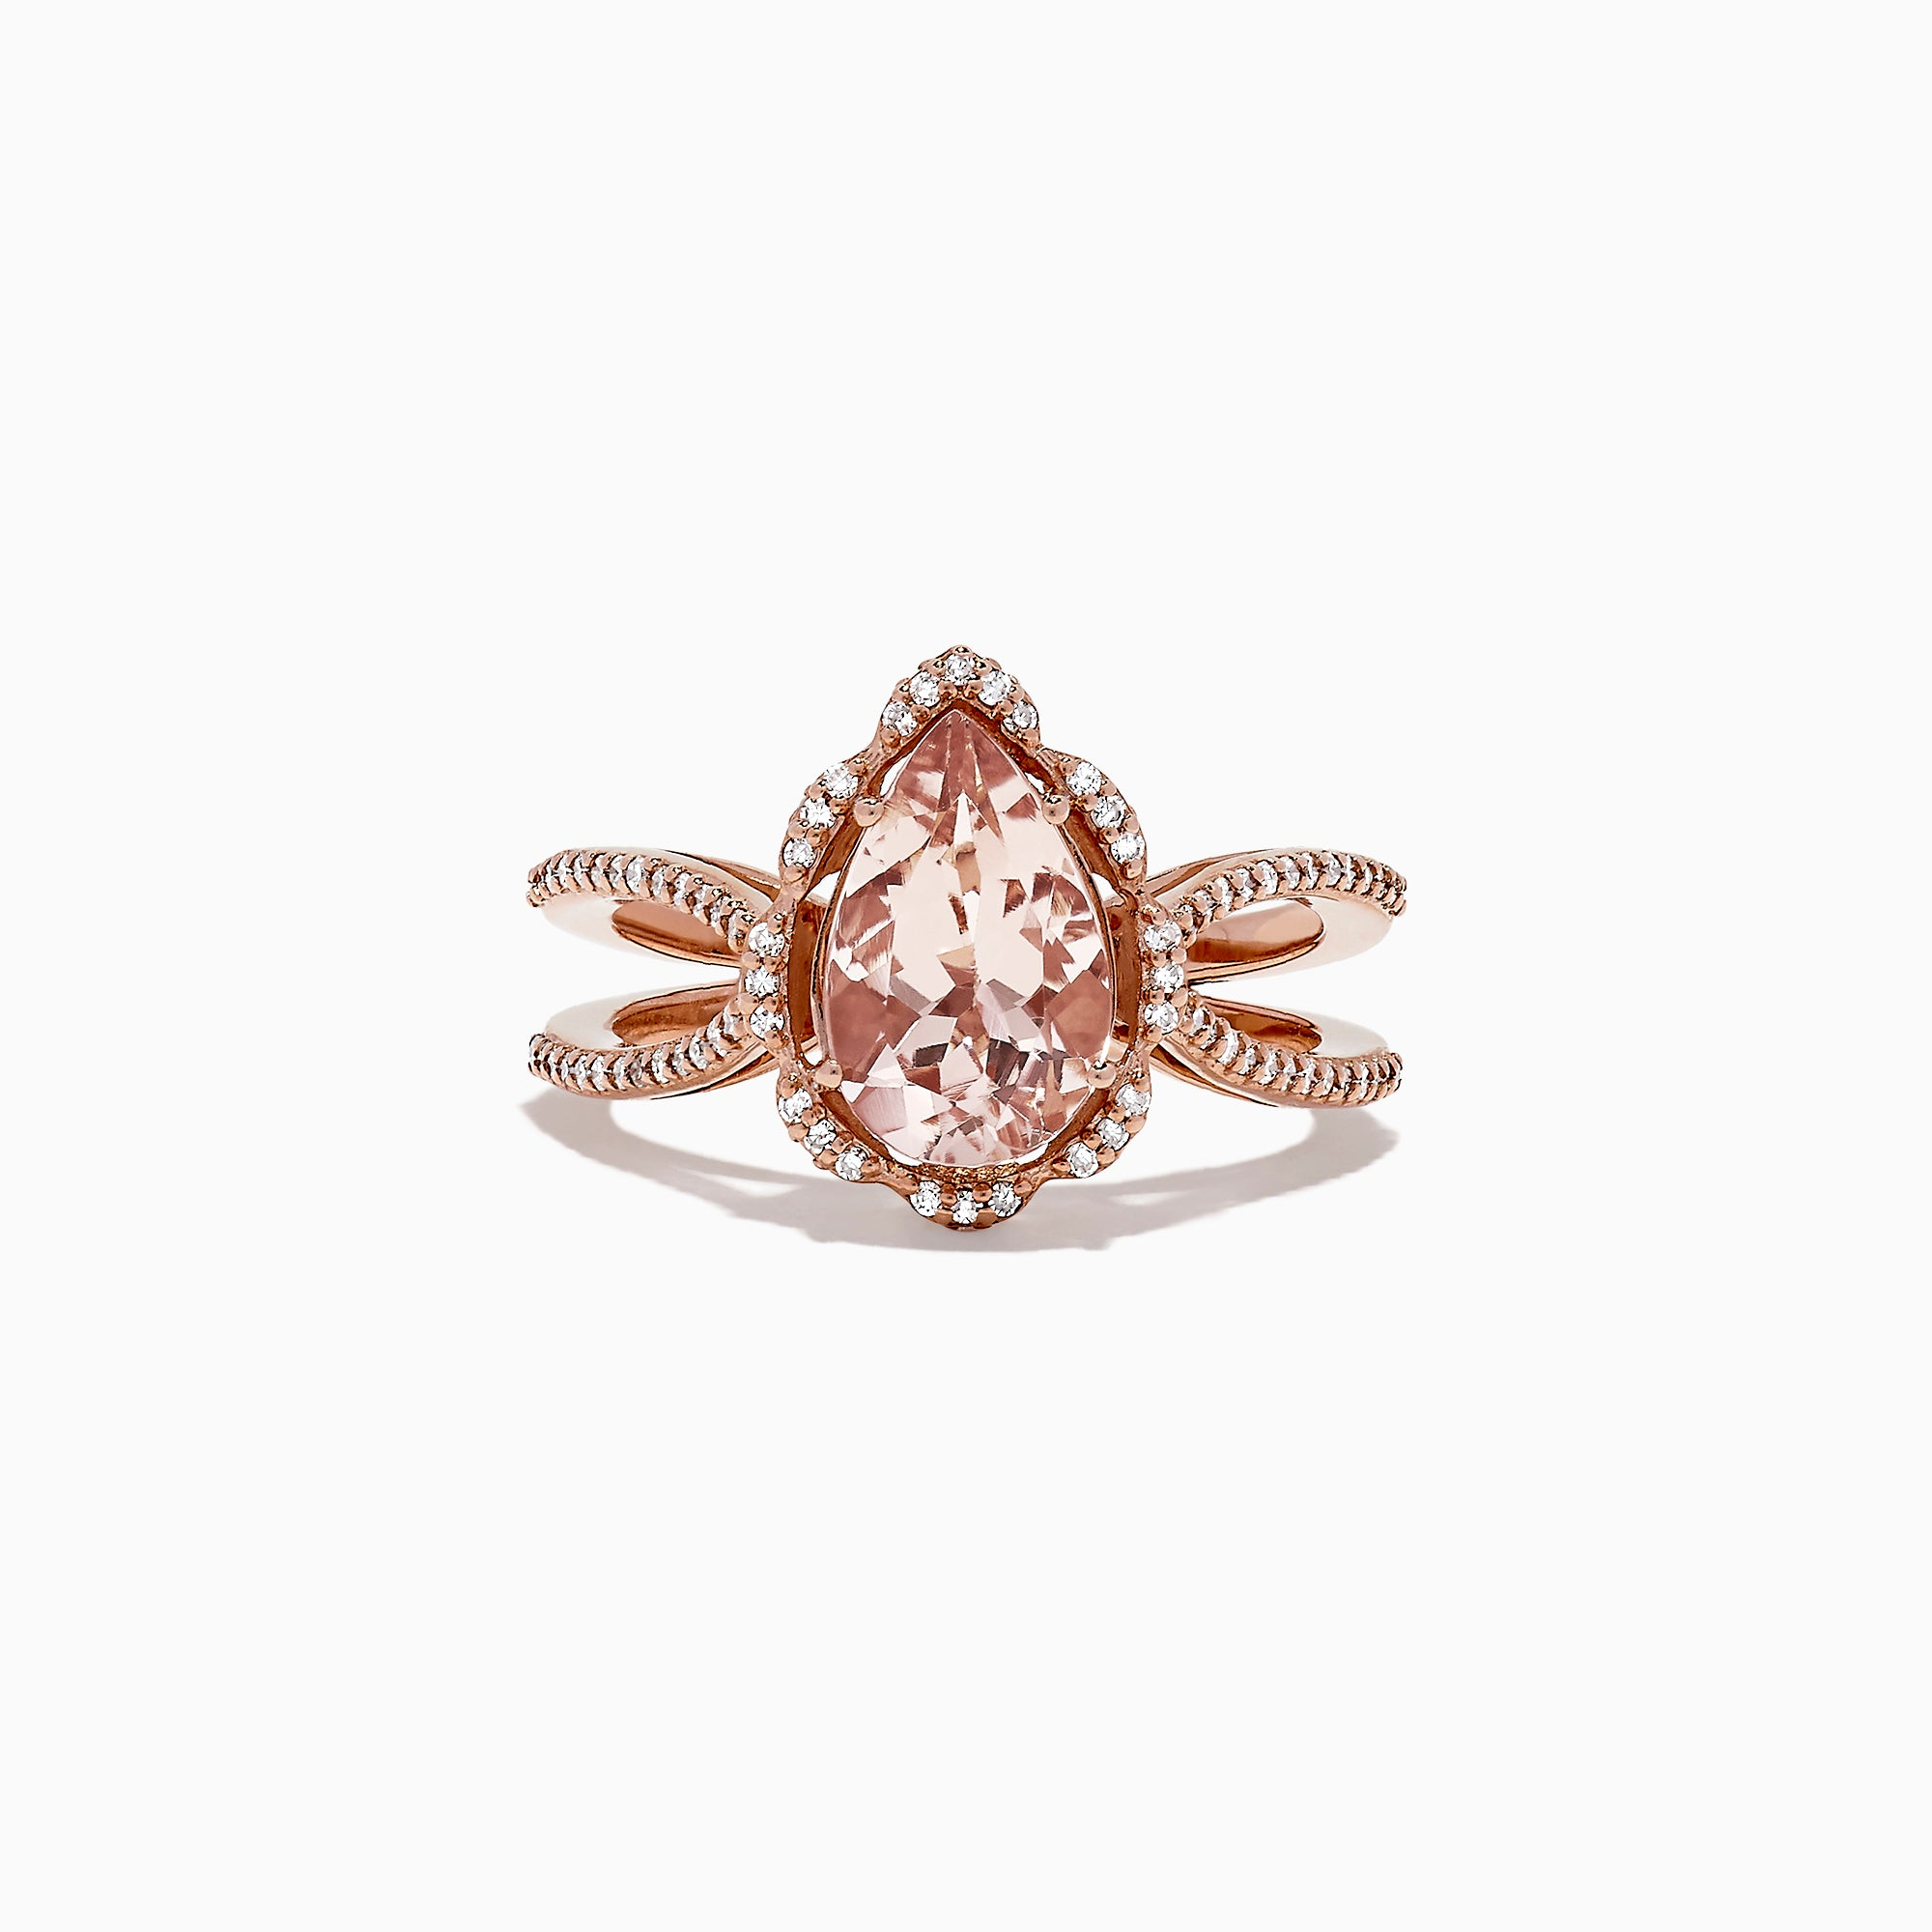 Effy Blush 14K Rose Gold Morganite and Diamond Pear Shaped Ring, 1.75 TCW